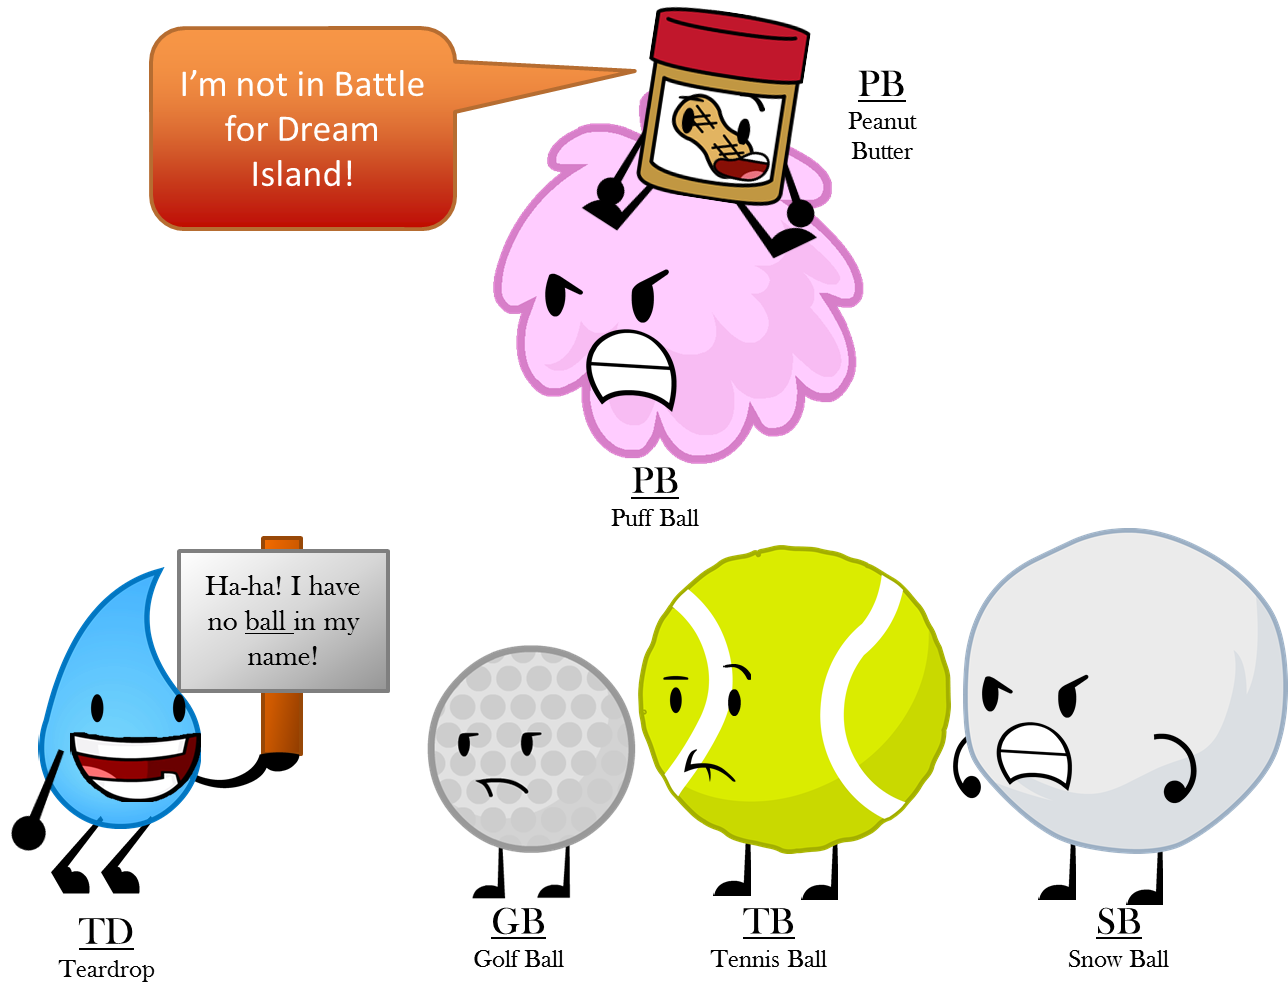 Image No Ball Png Battle For Dream Island Wiki